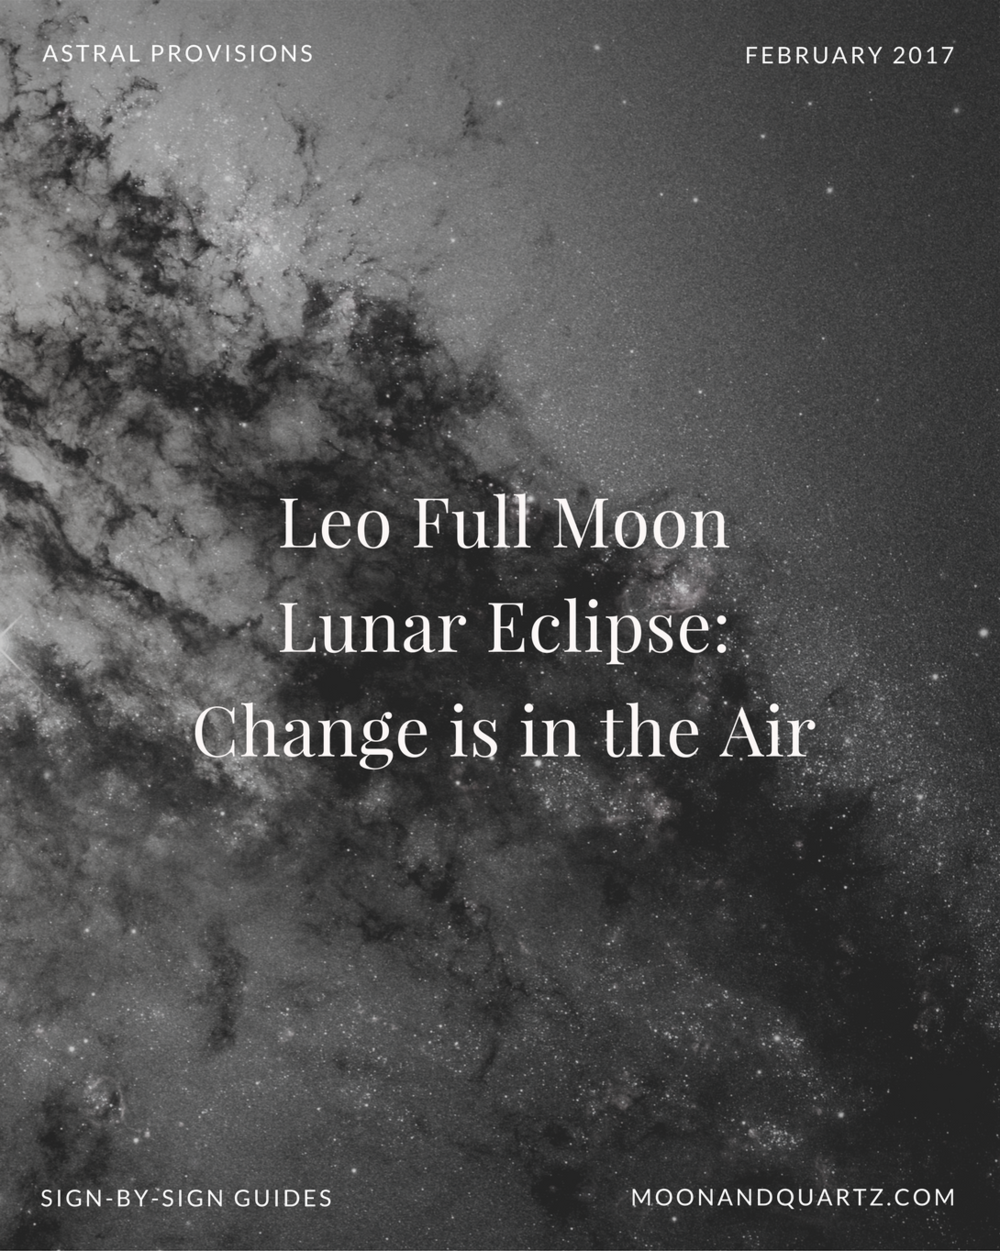 The Leo Full Moon is exact at 4:33pm Pacific on Friday, heightened by the magnifying energies of the Lunar Eclipse (which will be visible from the East Coast of the United States for the duration of the event). In sum? This one's a Big. Deal. Read on for all the details, plus sign-by-sign downloadable guides to maximizing the potential of this potent energy.